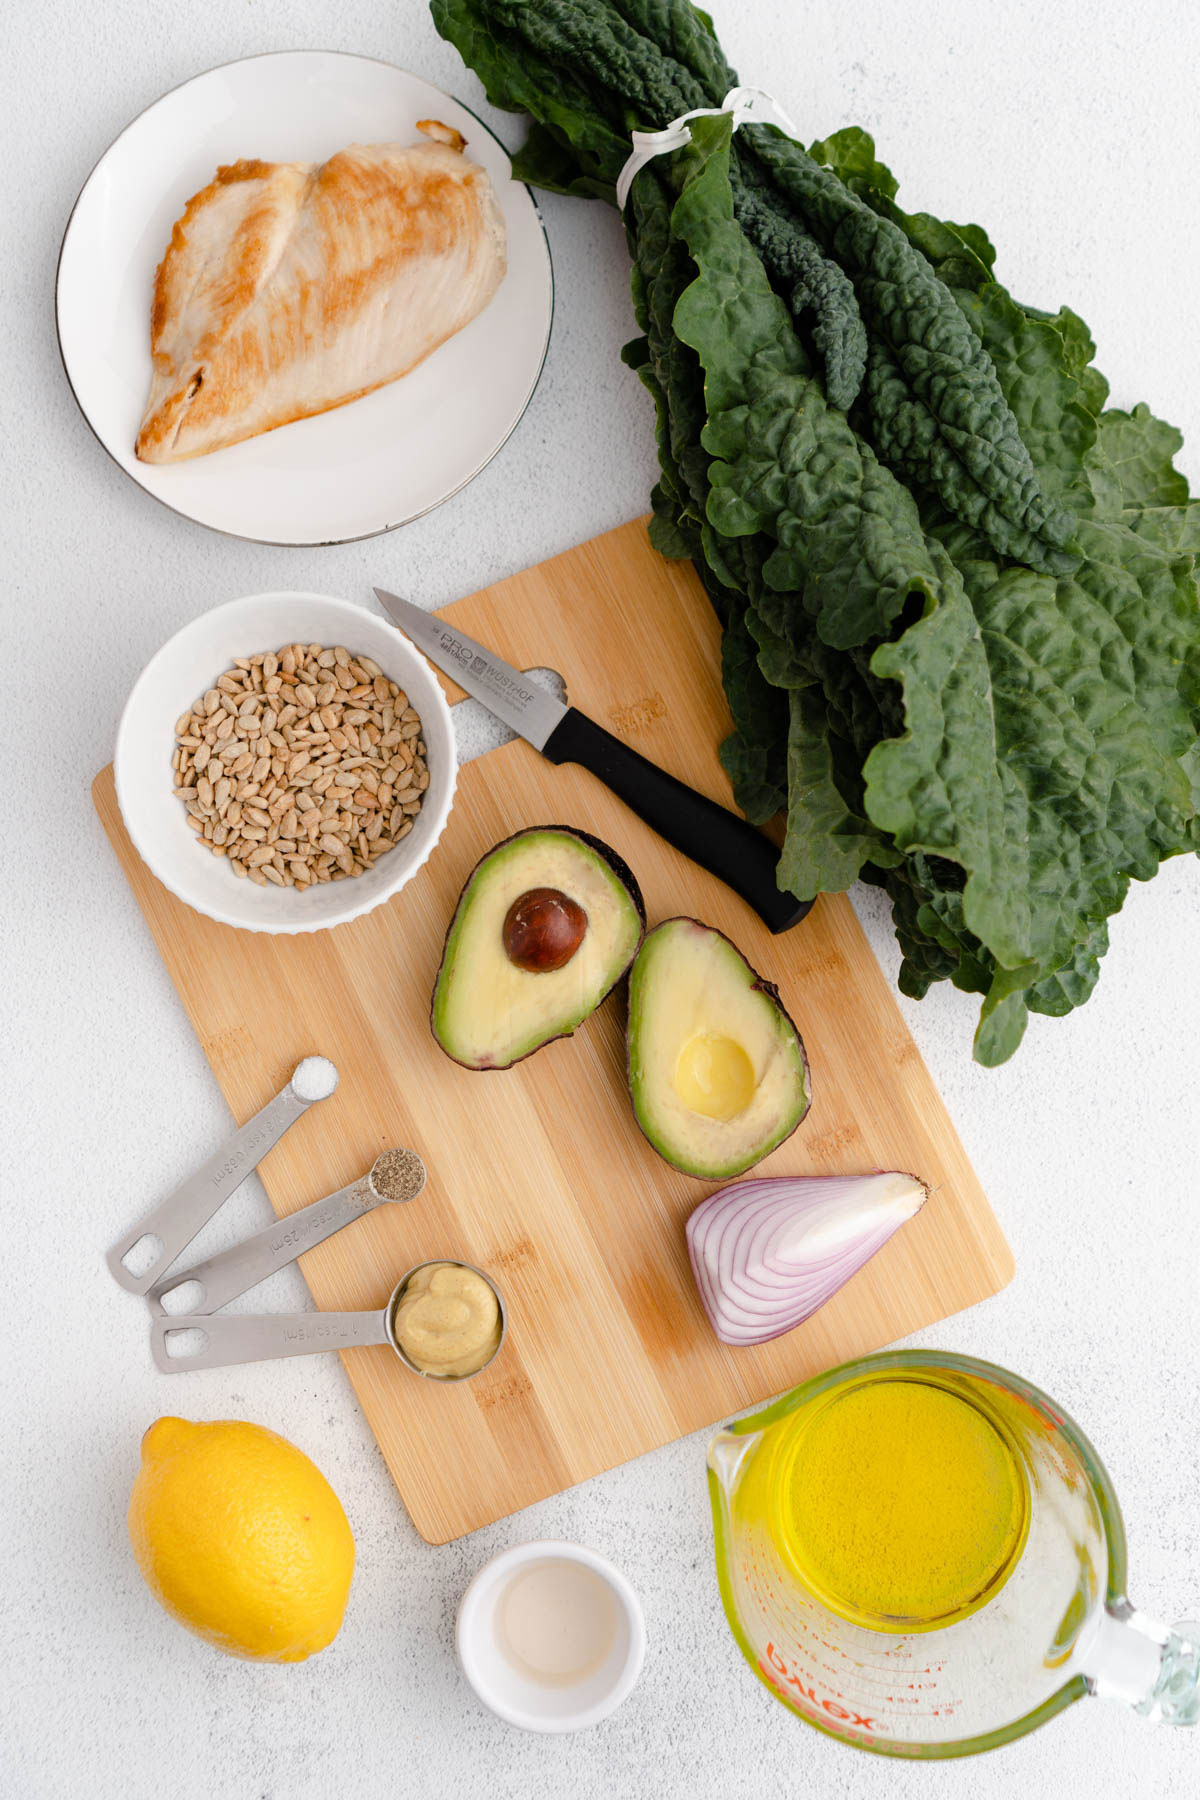 Overhead shot of ingredients used to prepare recipe: kale bunch, chicken breast on plate, olive oil in cup, lemon, cut avocado and red onion.